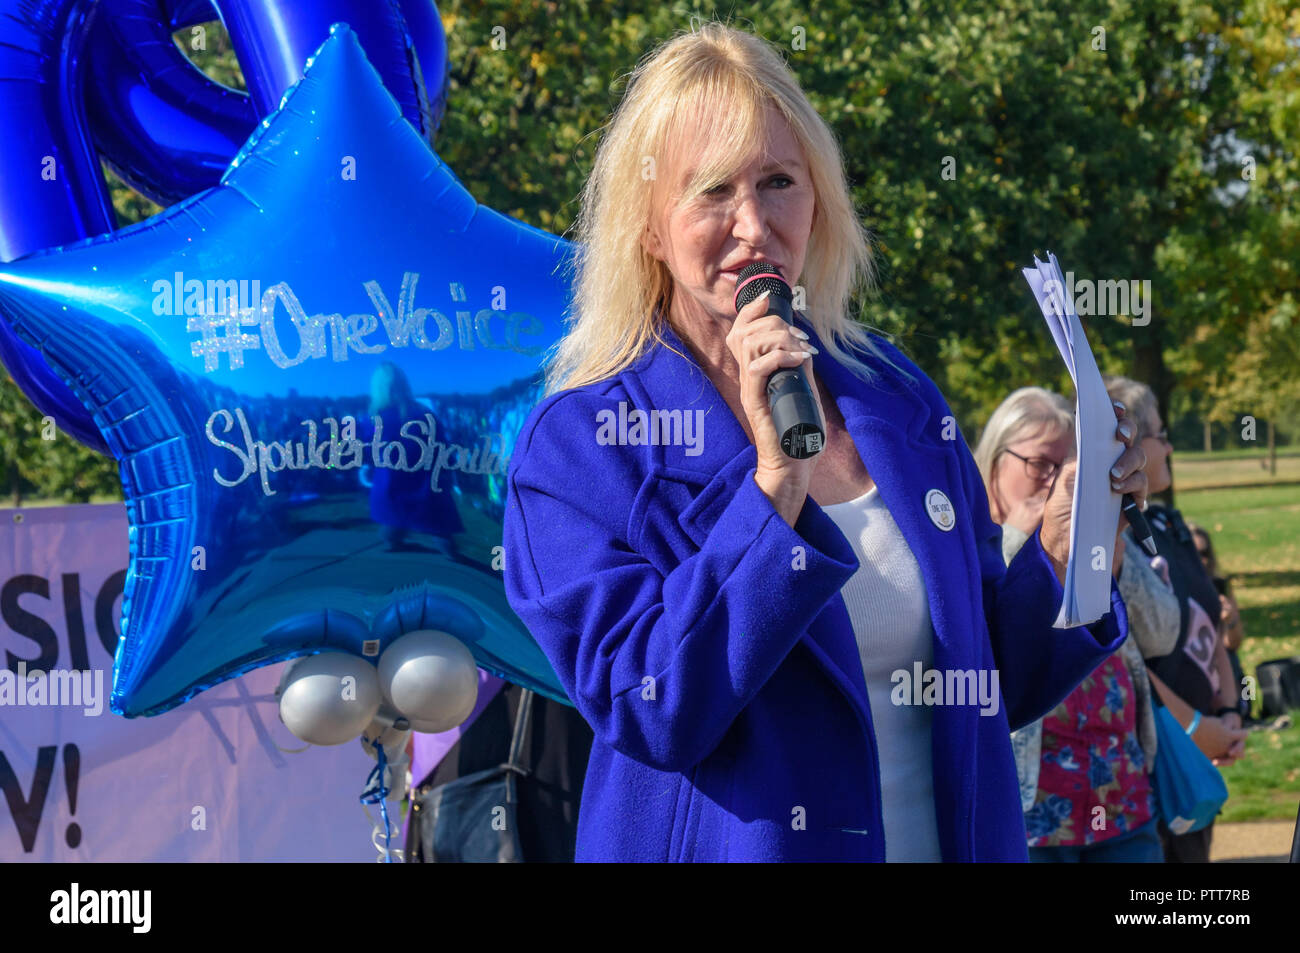 London, UK. 10th October 2018. Yvette Greenway speaks at the Shoulder to Shoulder rally in Hyde Park by groups campaigning for women born in the 1950s to regain the pensions stolen from them under successive governments, including The Waspi Campaign (Women Against State Pension Inequality),  Back to 60, We Paid In, You Pay Out and others. Credit: Peter Marshall/Alamy Live News - Stock Image